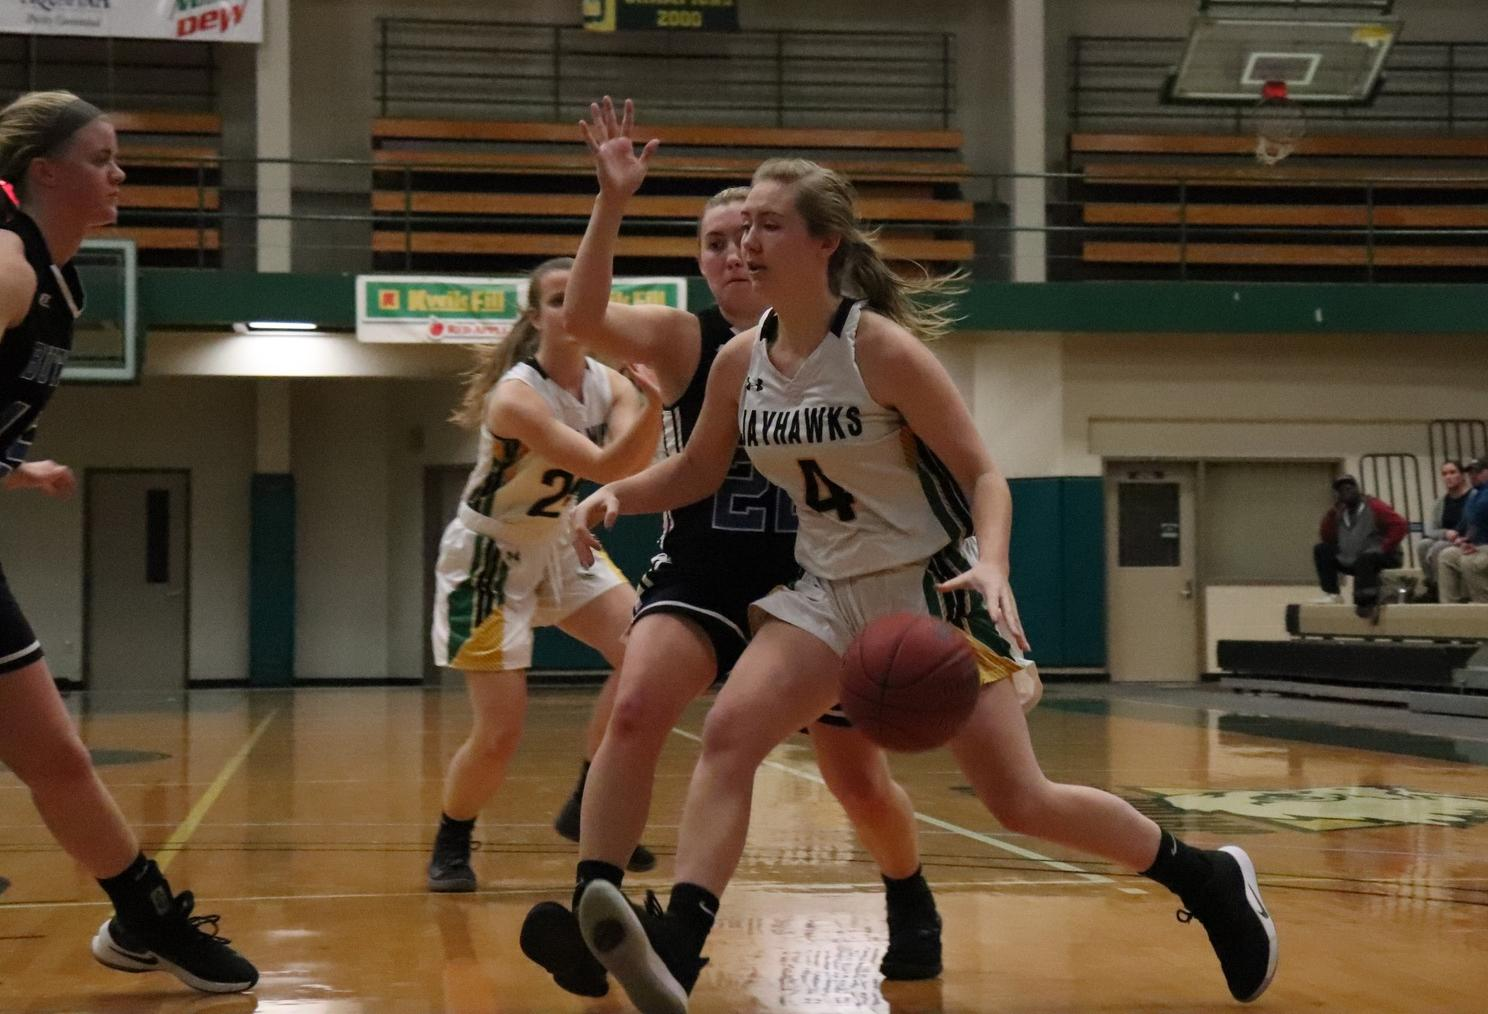 Hohl's 19 points pushes the Jayhawks over Beaver County